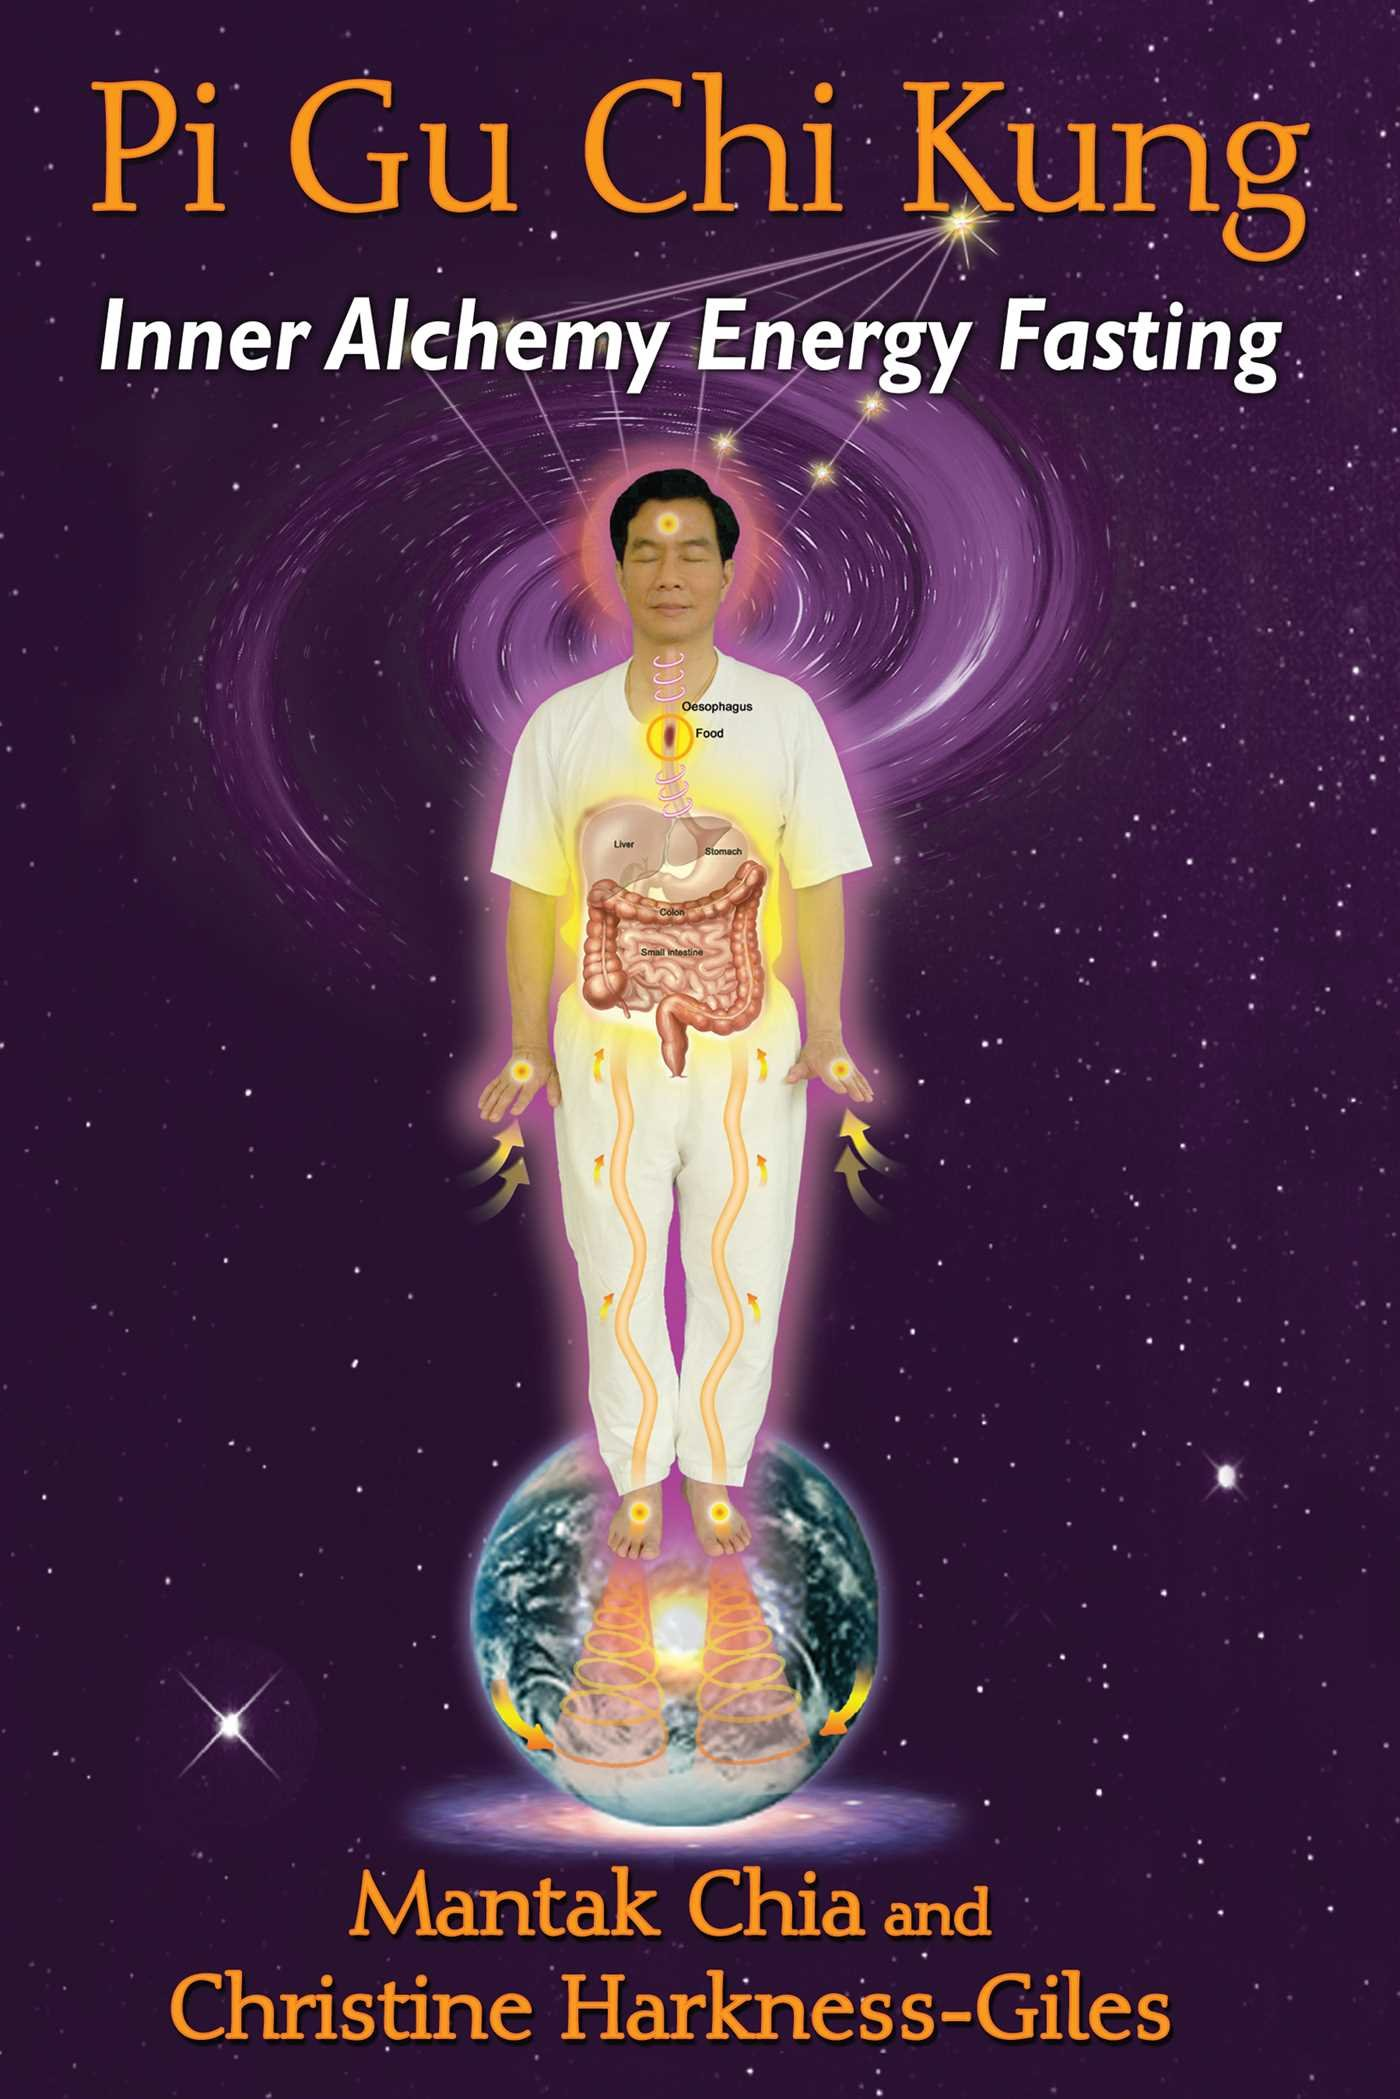 Image OfPi Gu Chi Kung: Inner Alchemy Energy Fasting (English Edition)